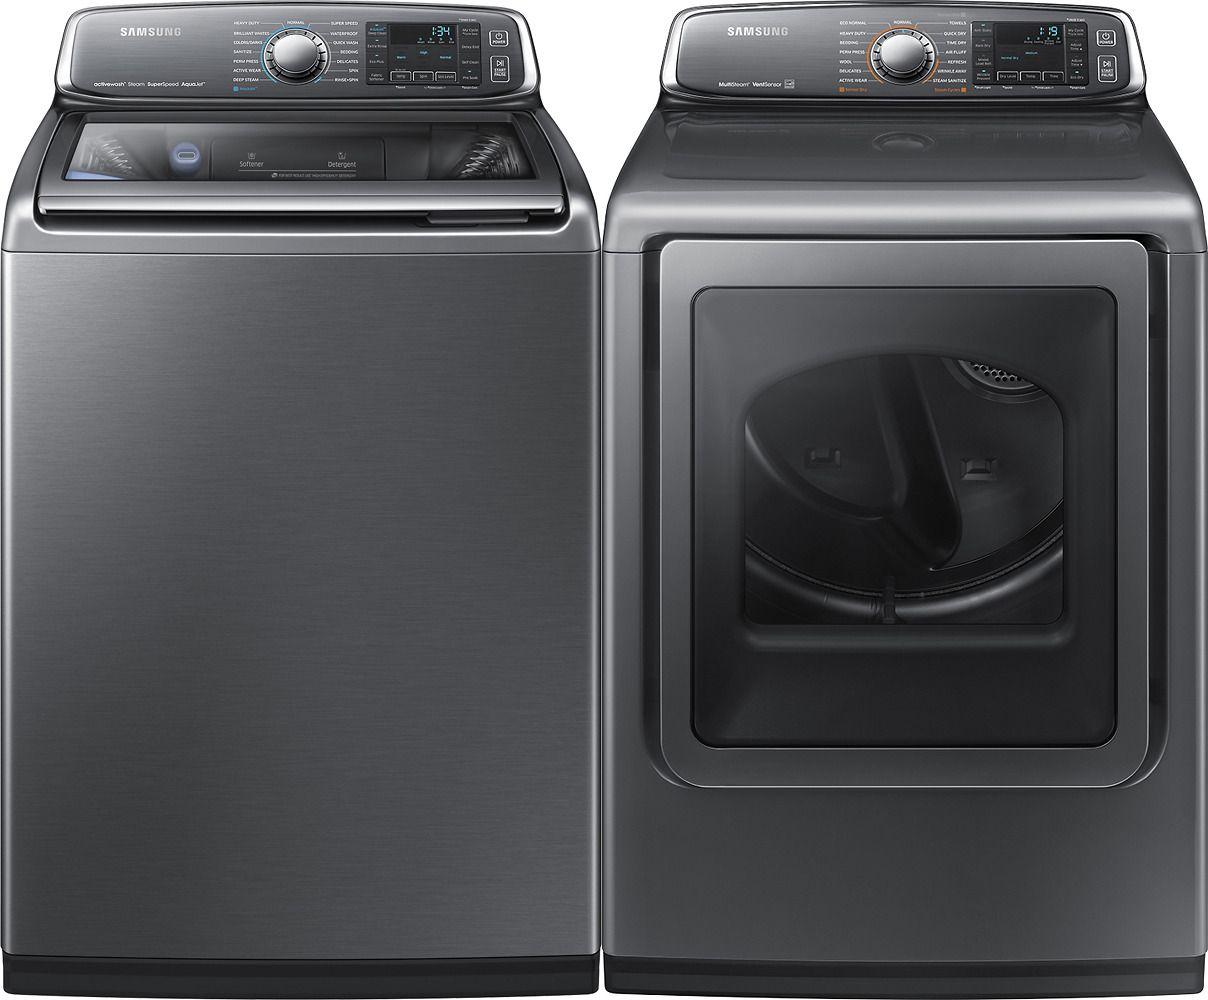 Gas Washers And Dryers Samsung Washer And Dryer Review From Best Buy Amazing Set With